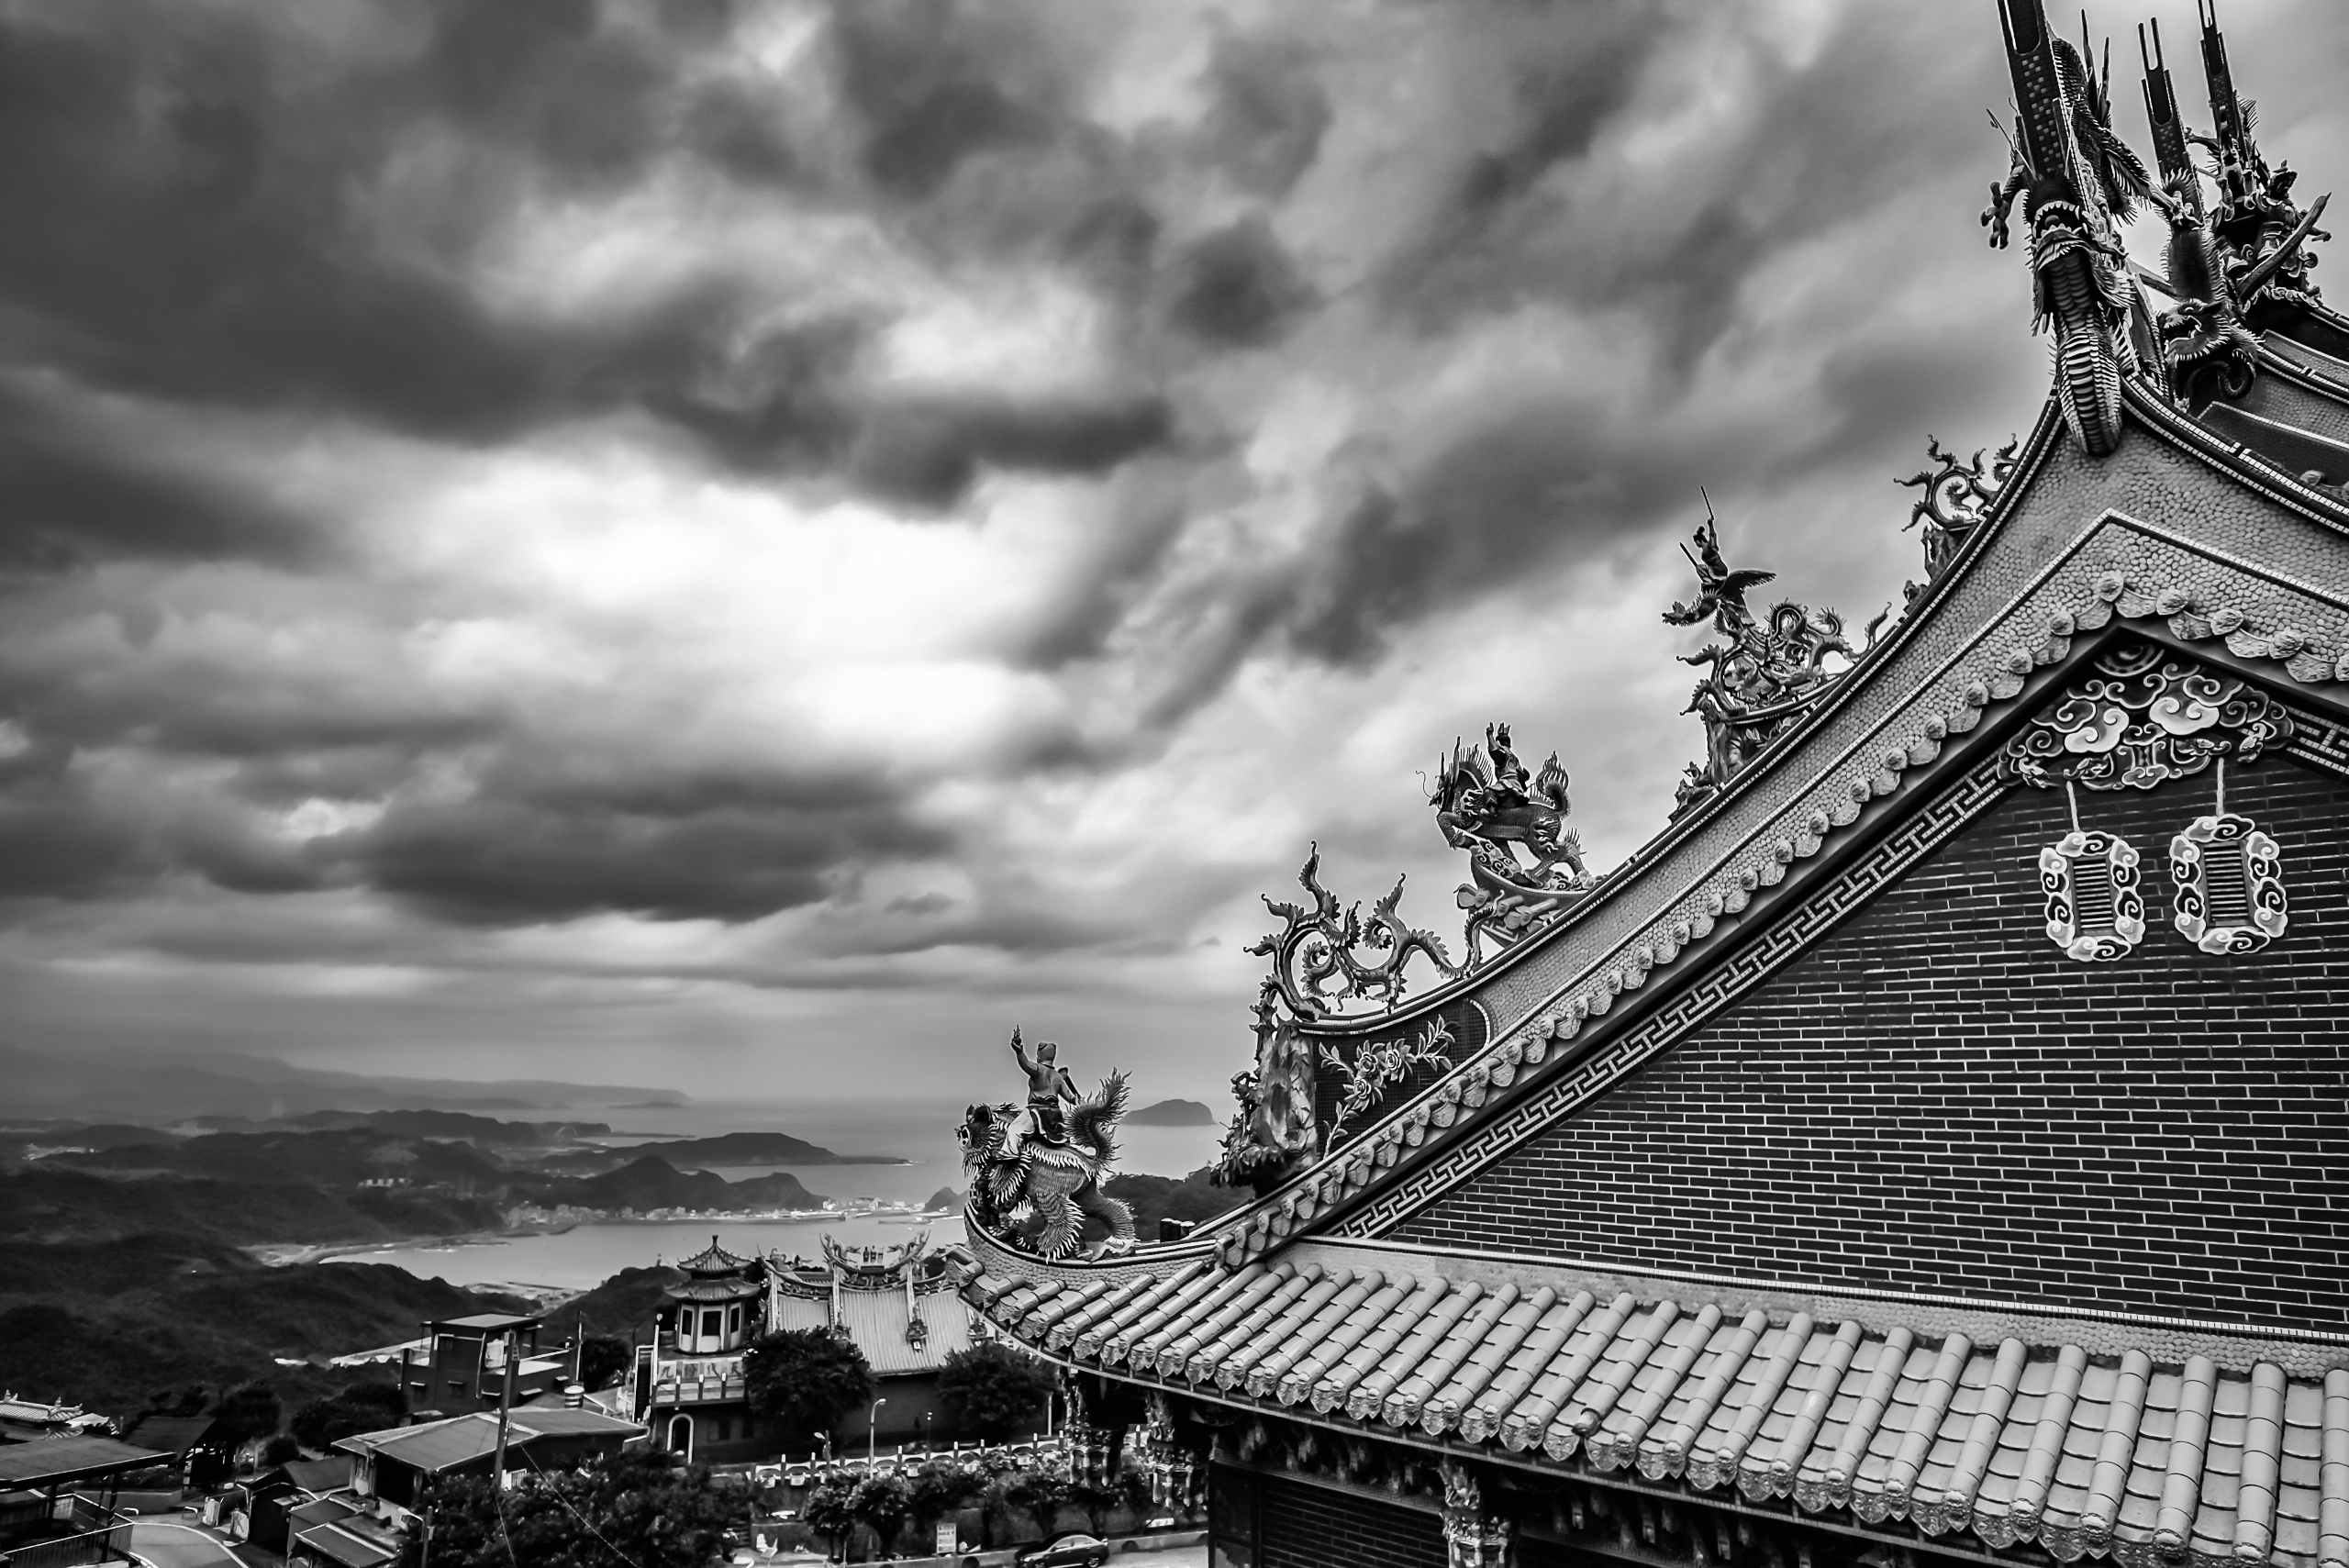 Clouds Jiufen Village, Taiwan - photography - johnnyg_photography | ello